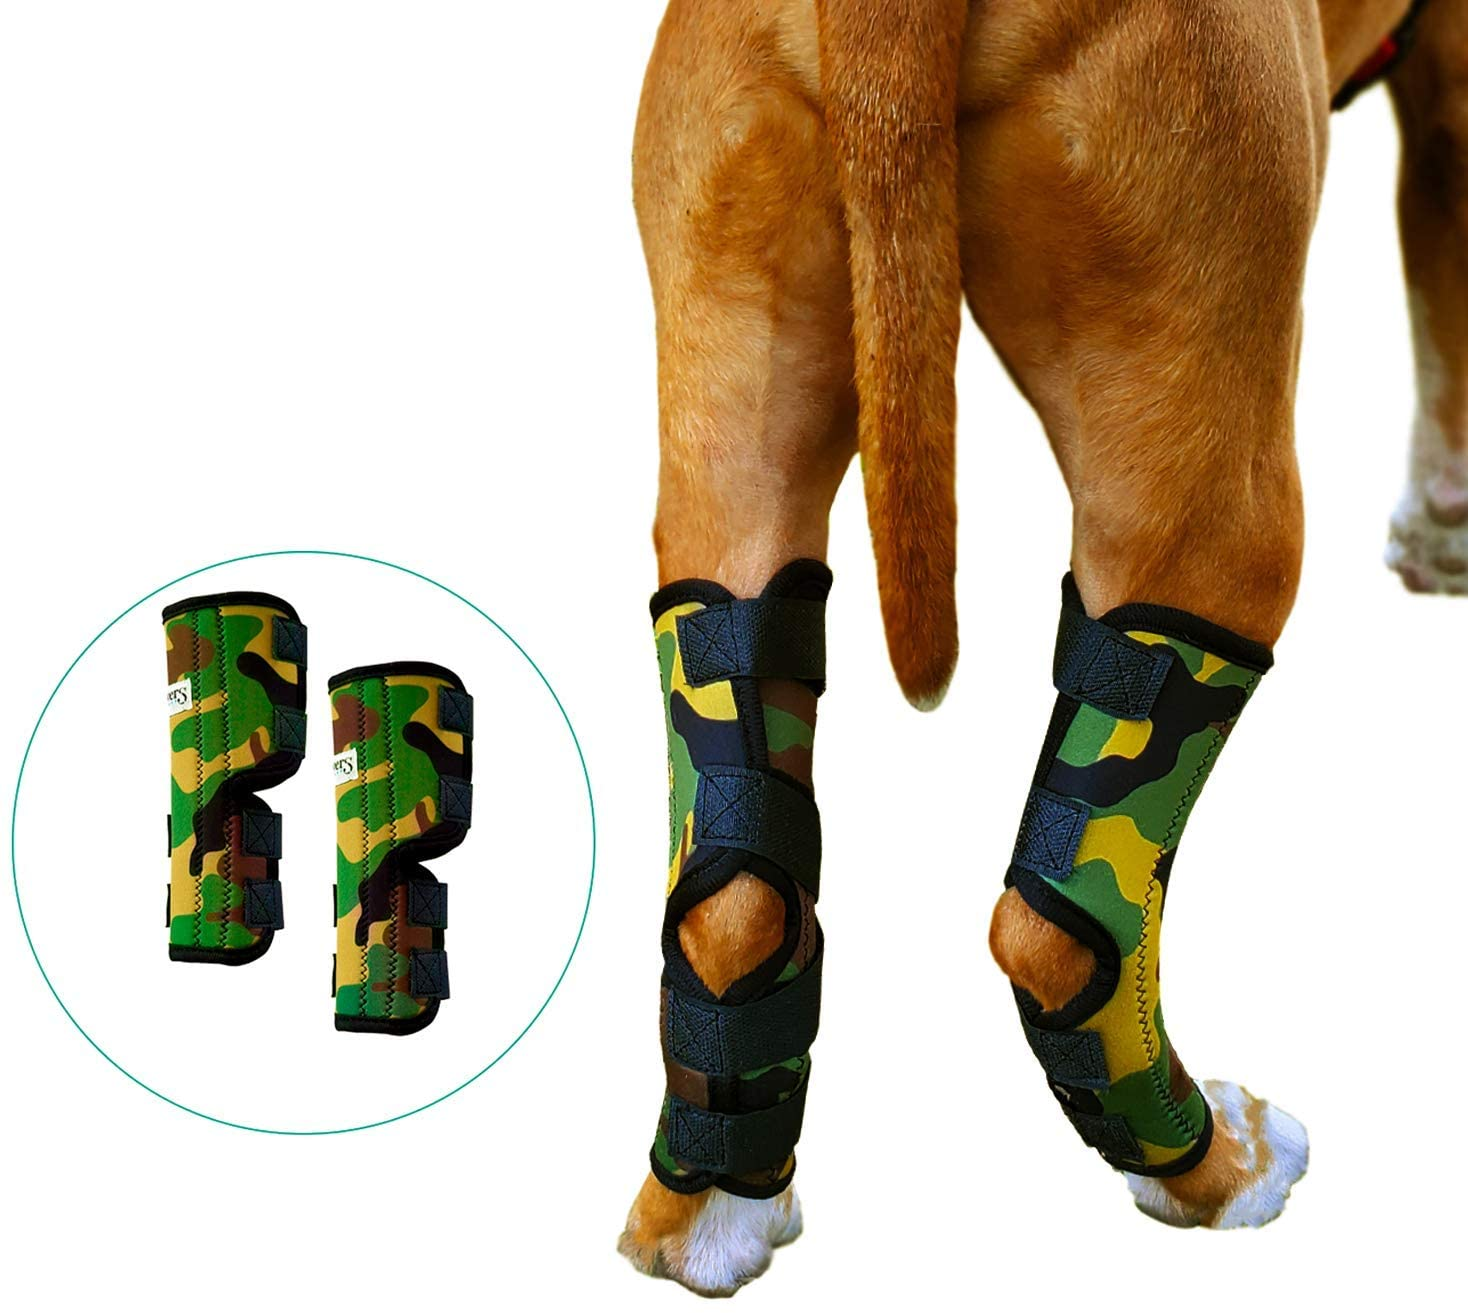 Pet Lovers Stuff Dog Leg Brace for Hind Leg